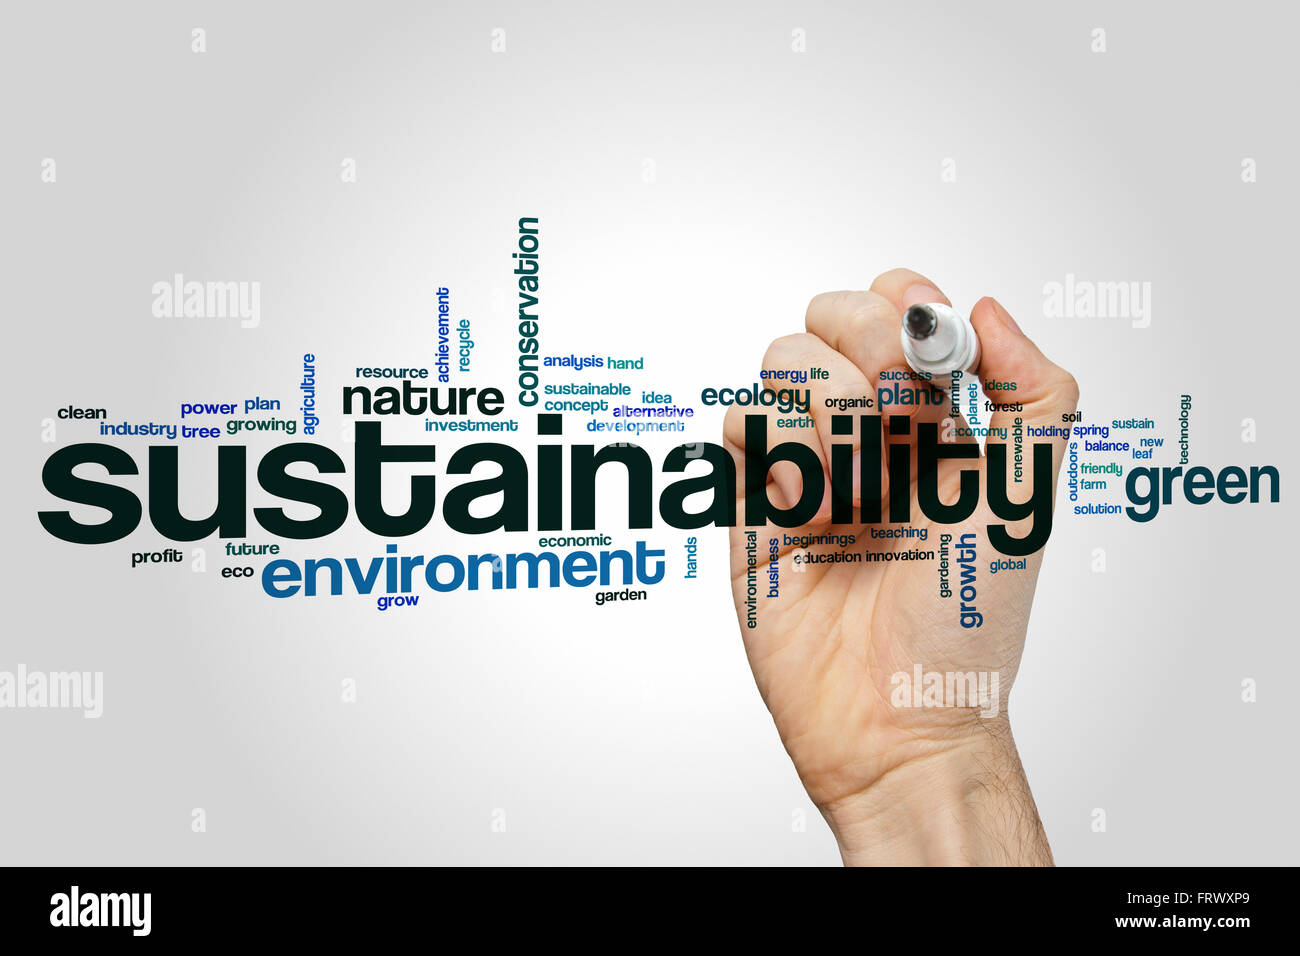 Sustainability word cloud - Stock Image